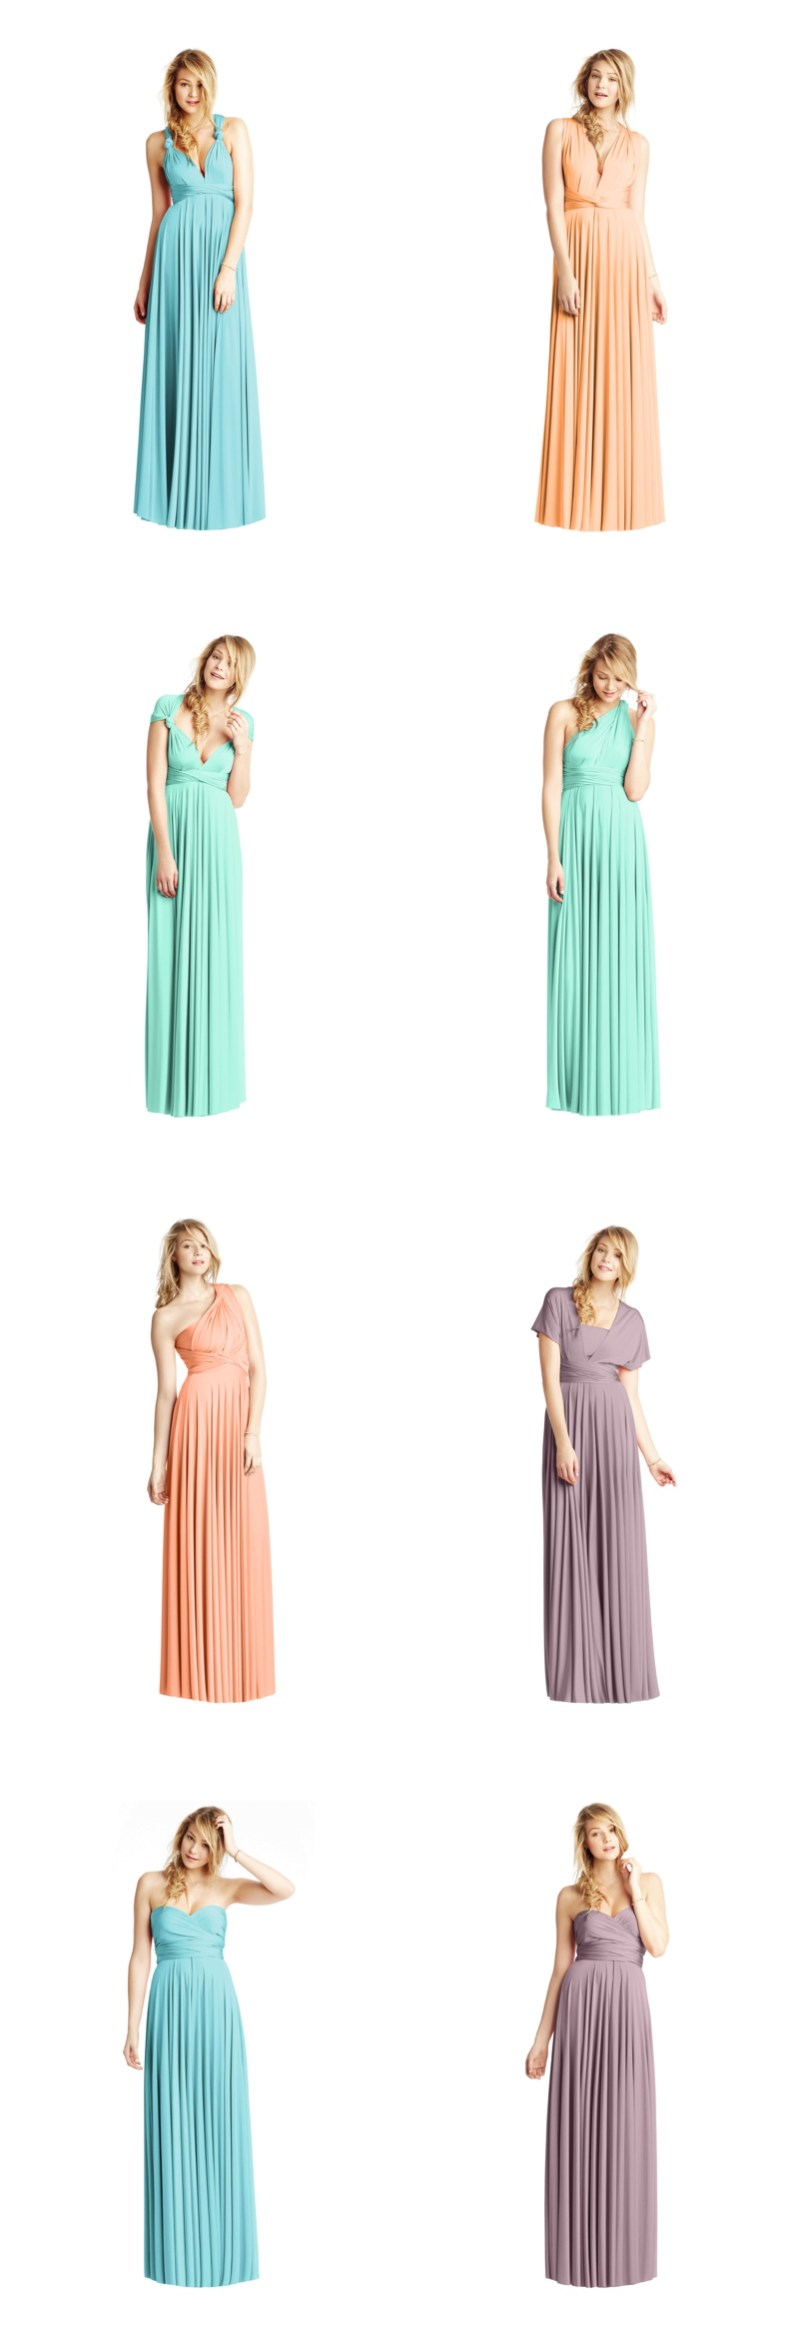 ATwobirds bridesmaids dresses new pastel shades peach mint heather and duck egg 0536 Pretty Pastels From Twobirds Bridesmaids!